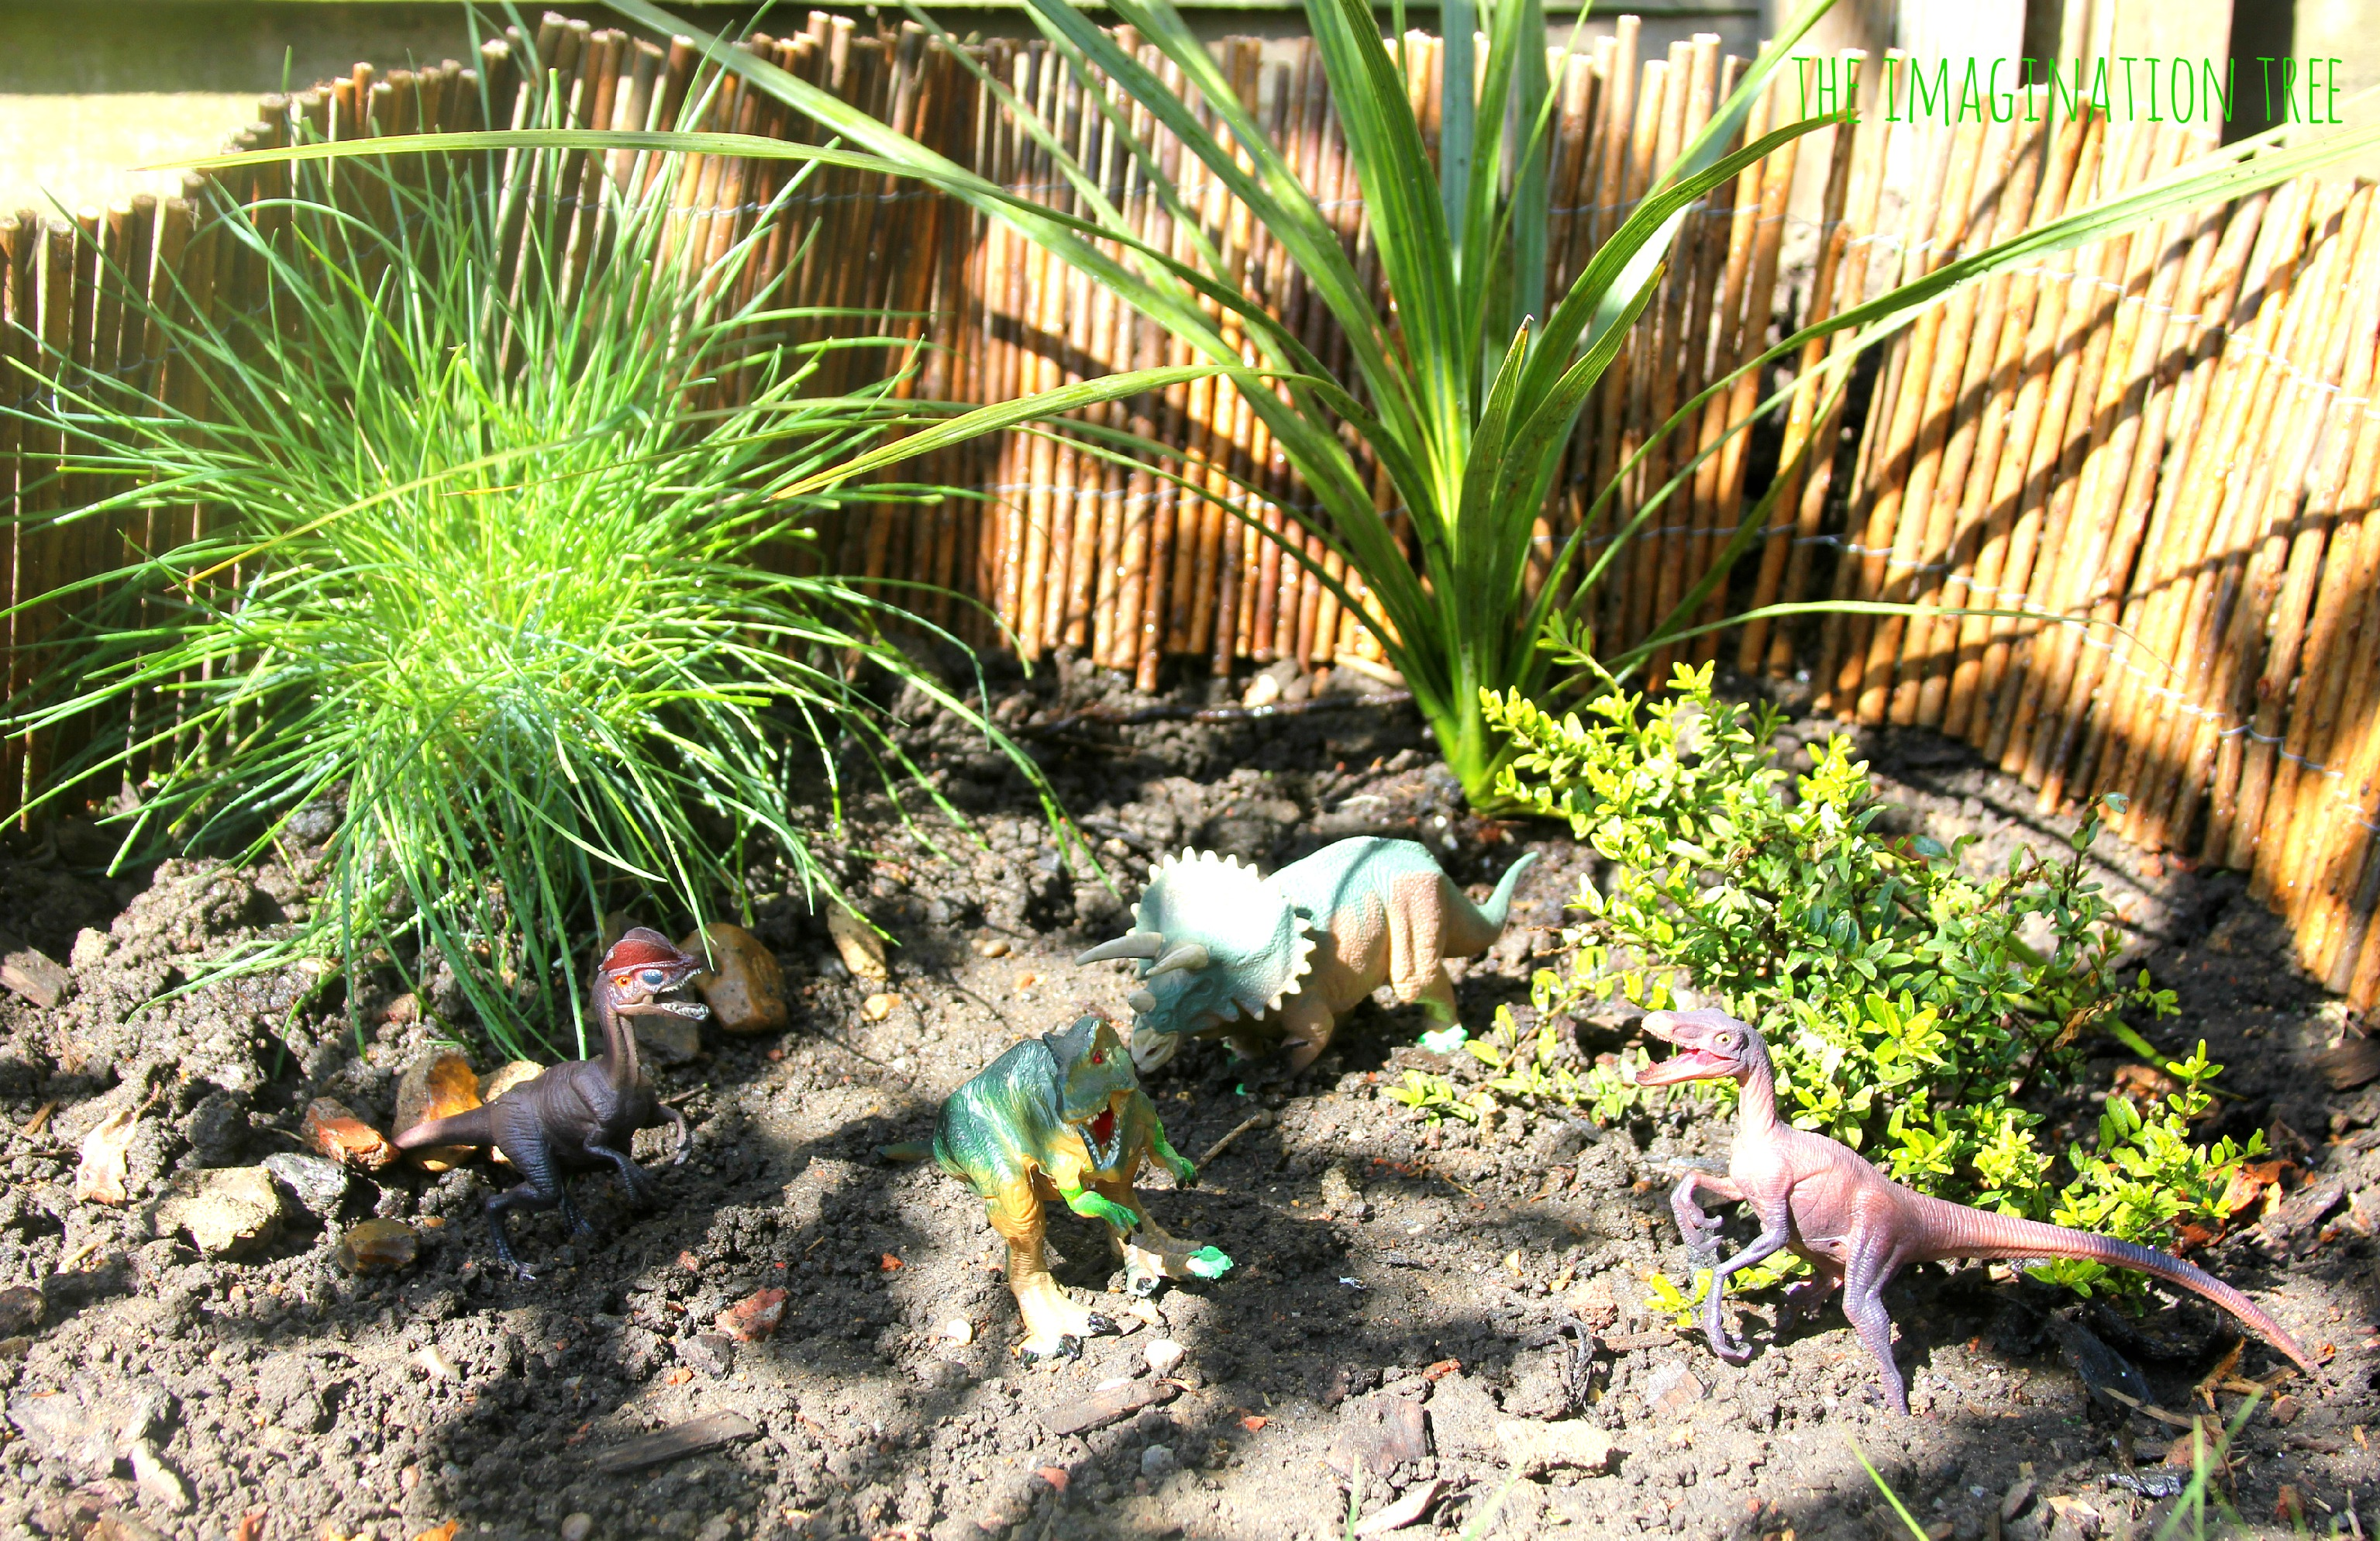 Small world play dinosaur garden the imagination tree for The landscape gardener